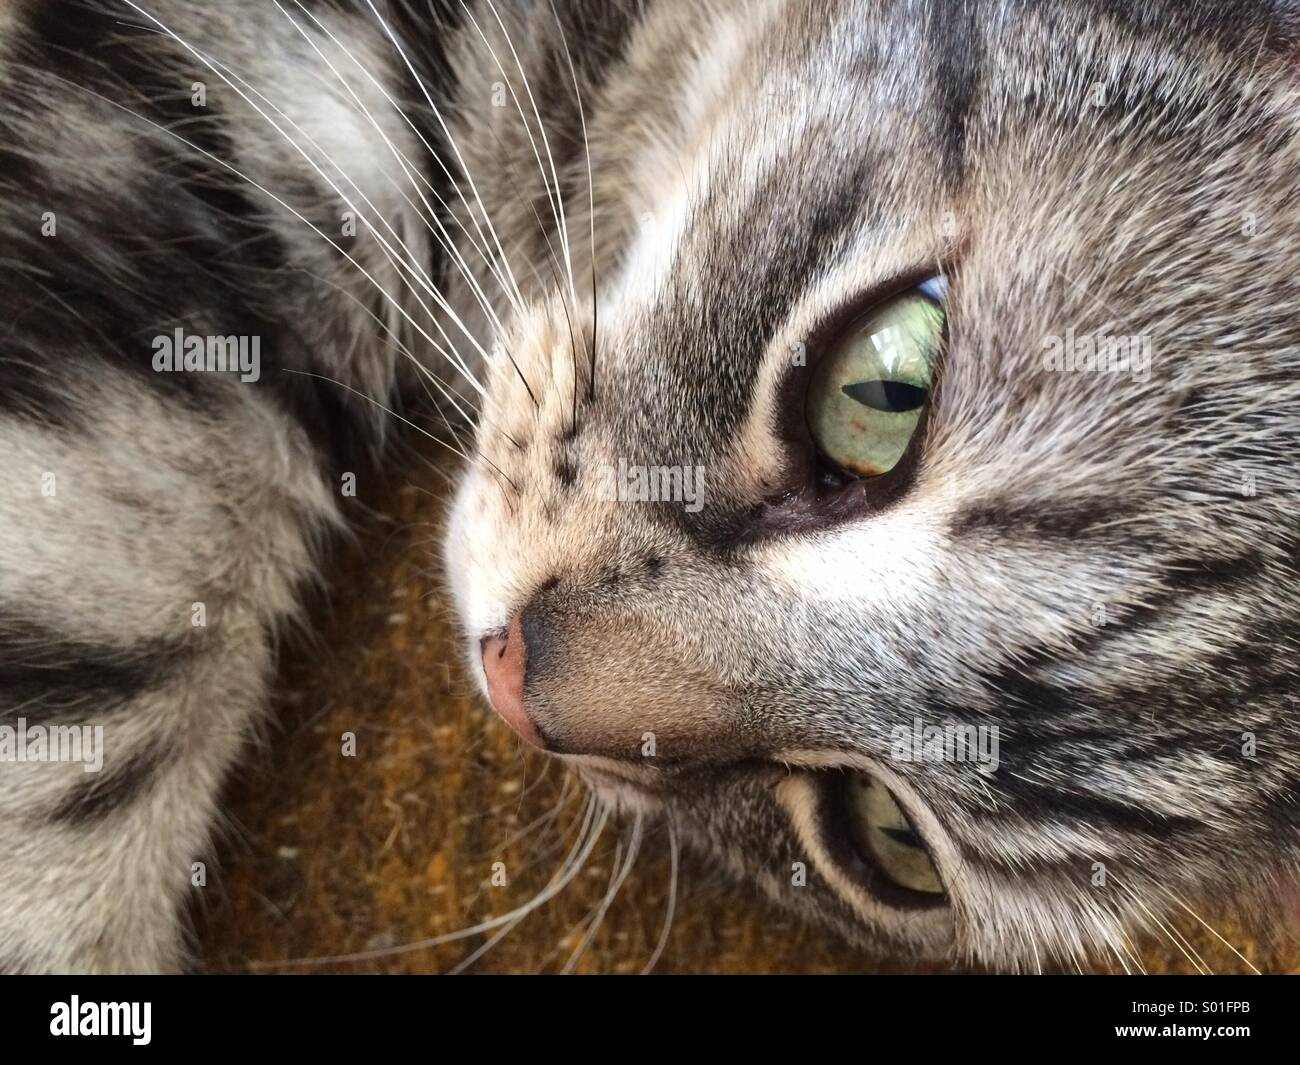 Lazy tabby cat on bed resting - Stock Image